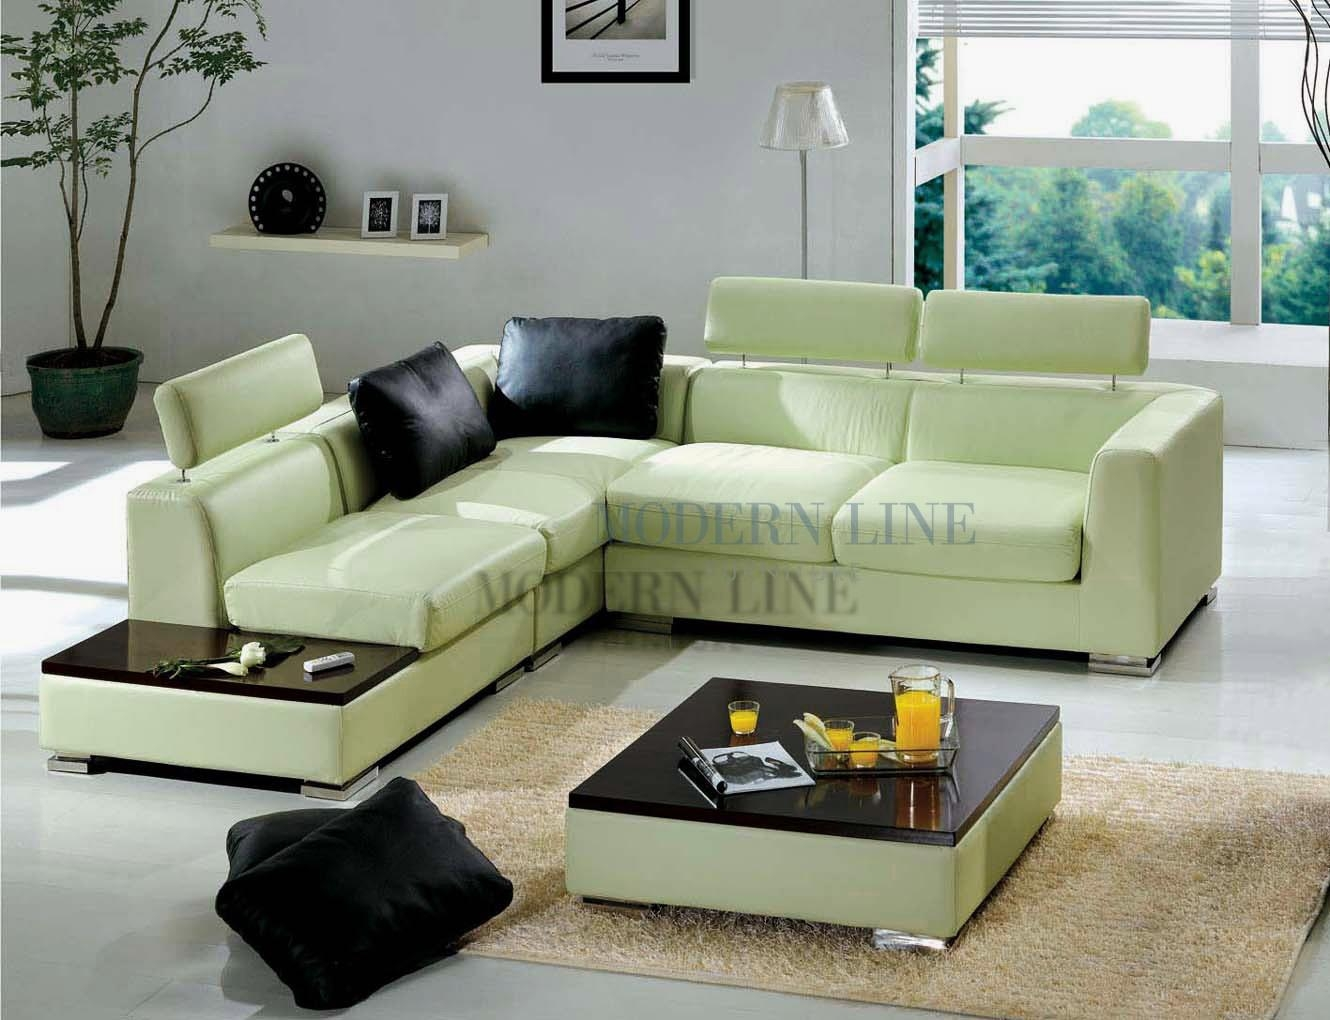 Modern Line Furniture – Commercial Furniture – Custom Made With Regard To Green Leather Sectional Sofas (View 2 of 20)